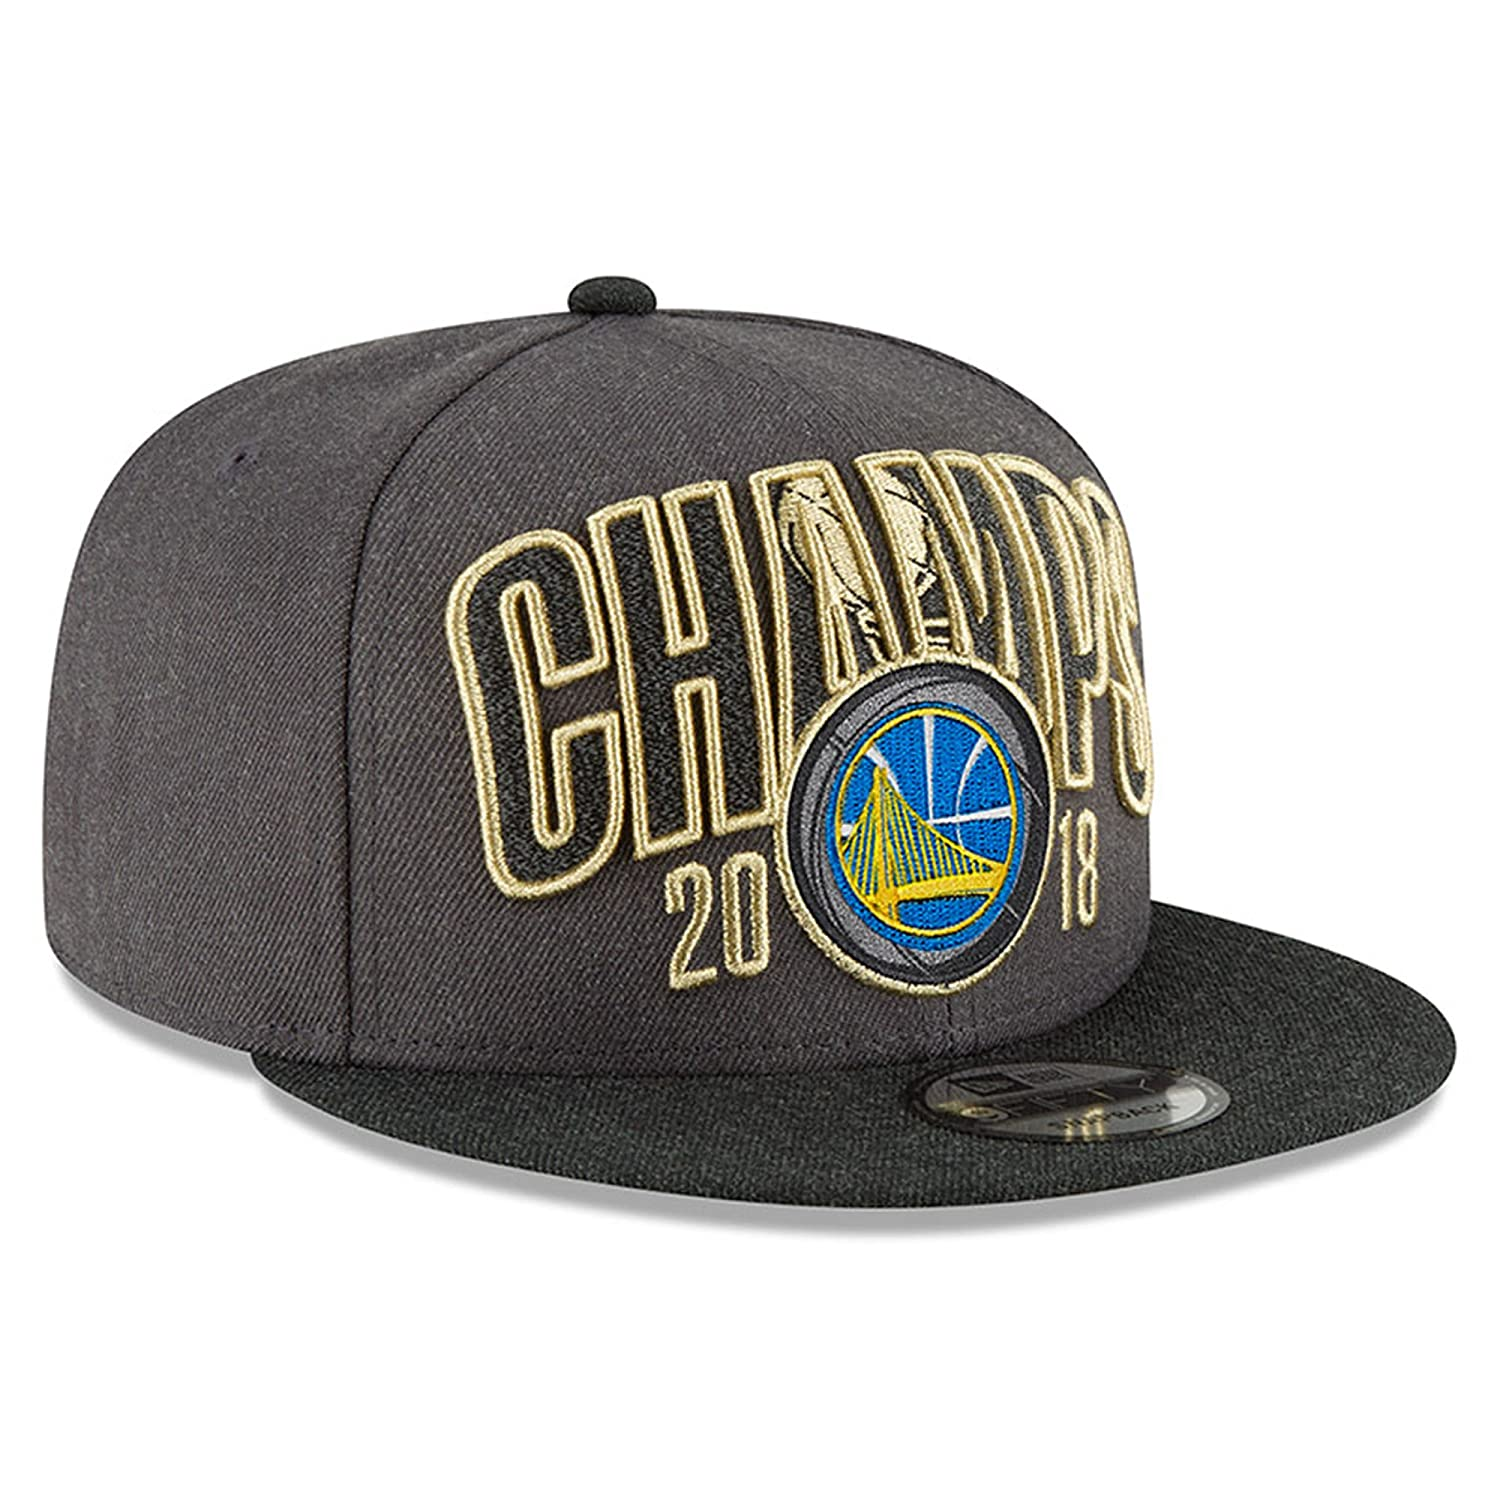 2764efbe7d801 Amazon.com   Official Warriors 2018 Finals Champions Locker Room Snapback  Adjustable Hat - Charcoal   Sports   Outdoors